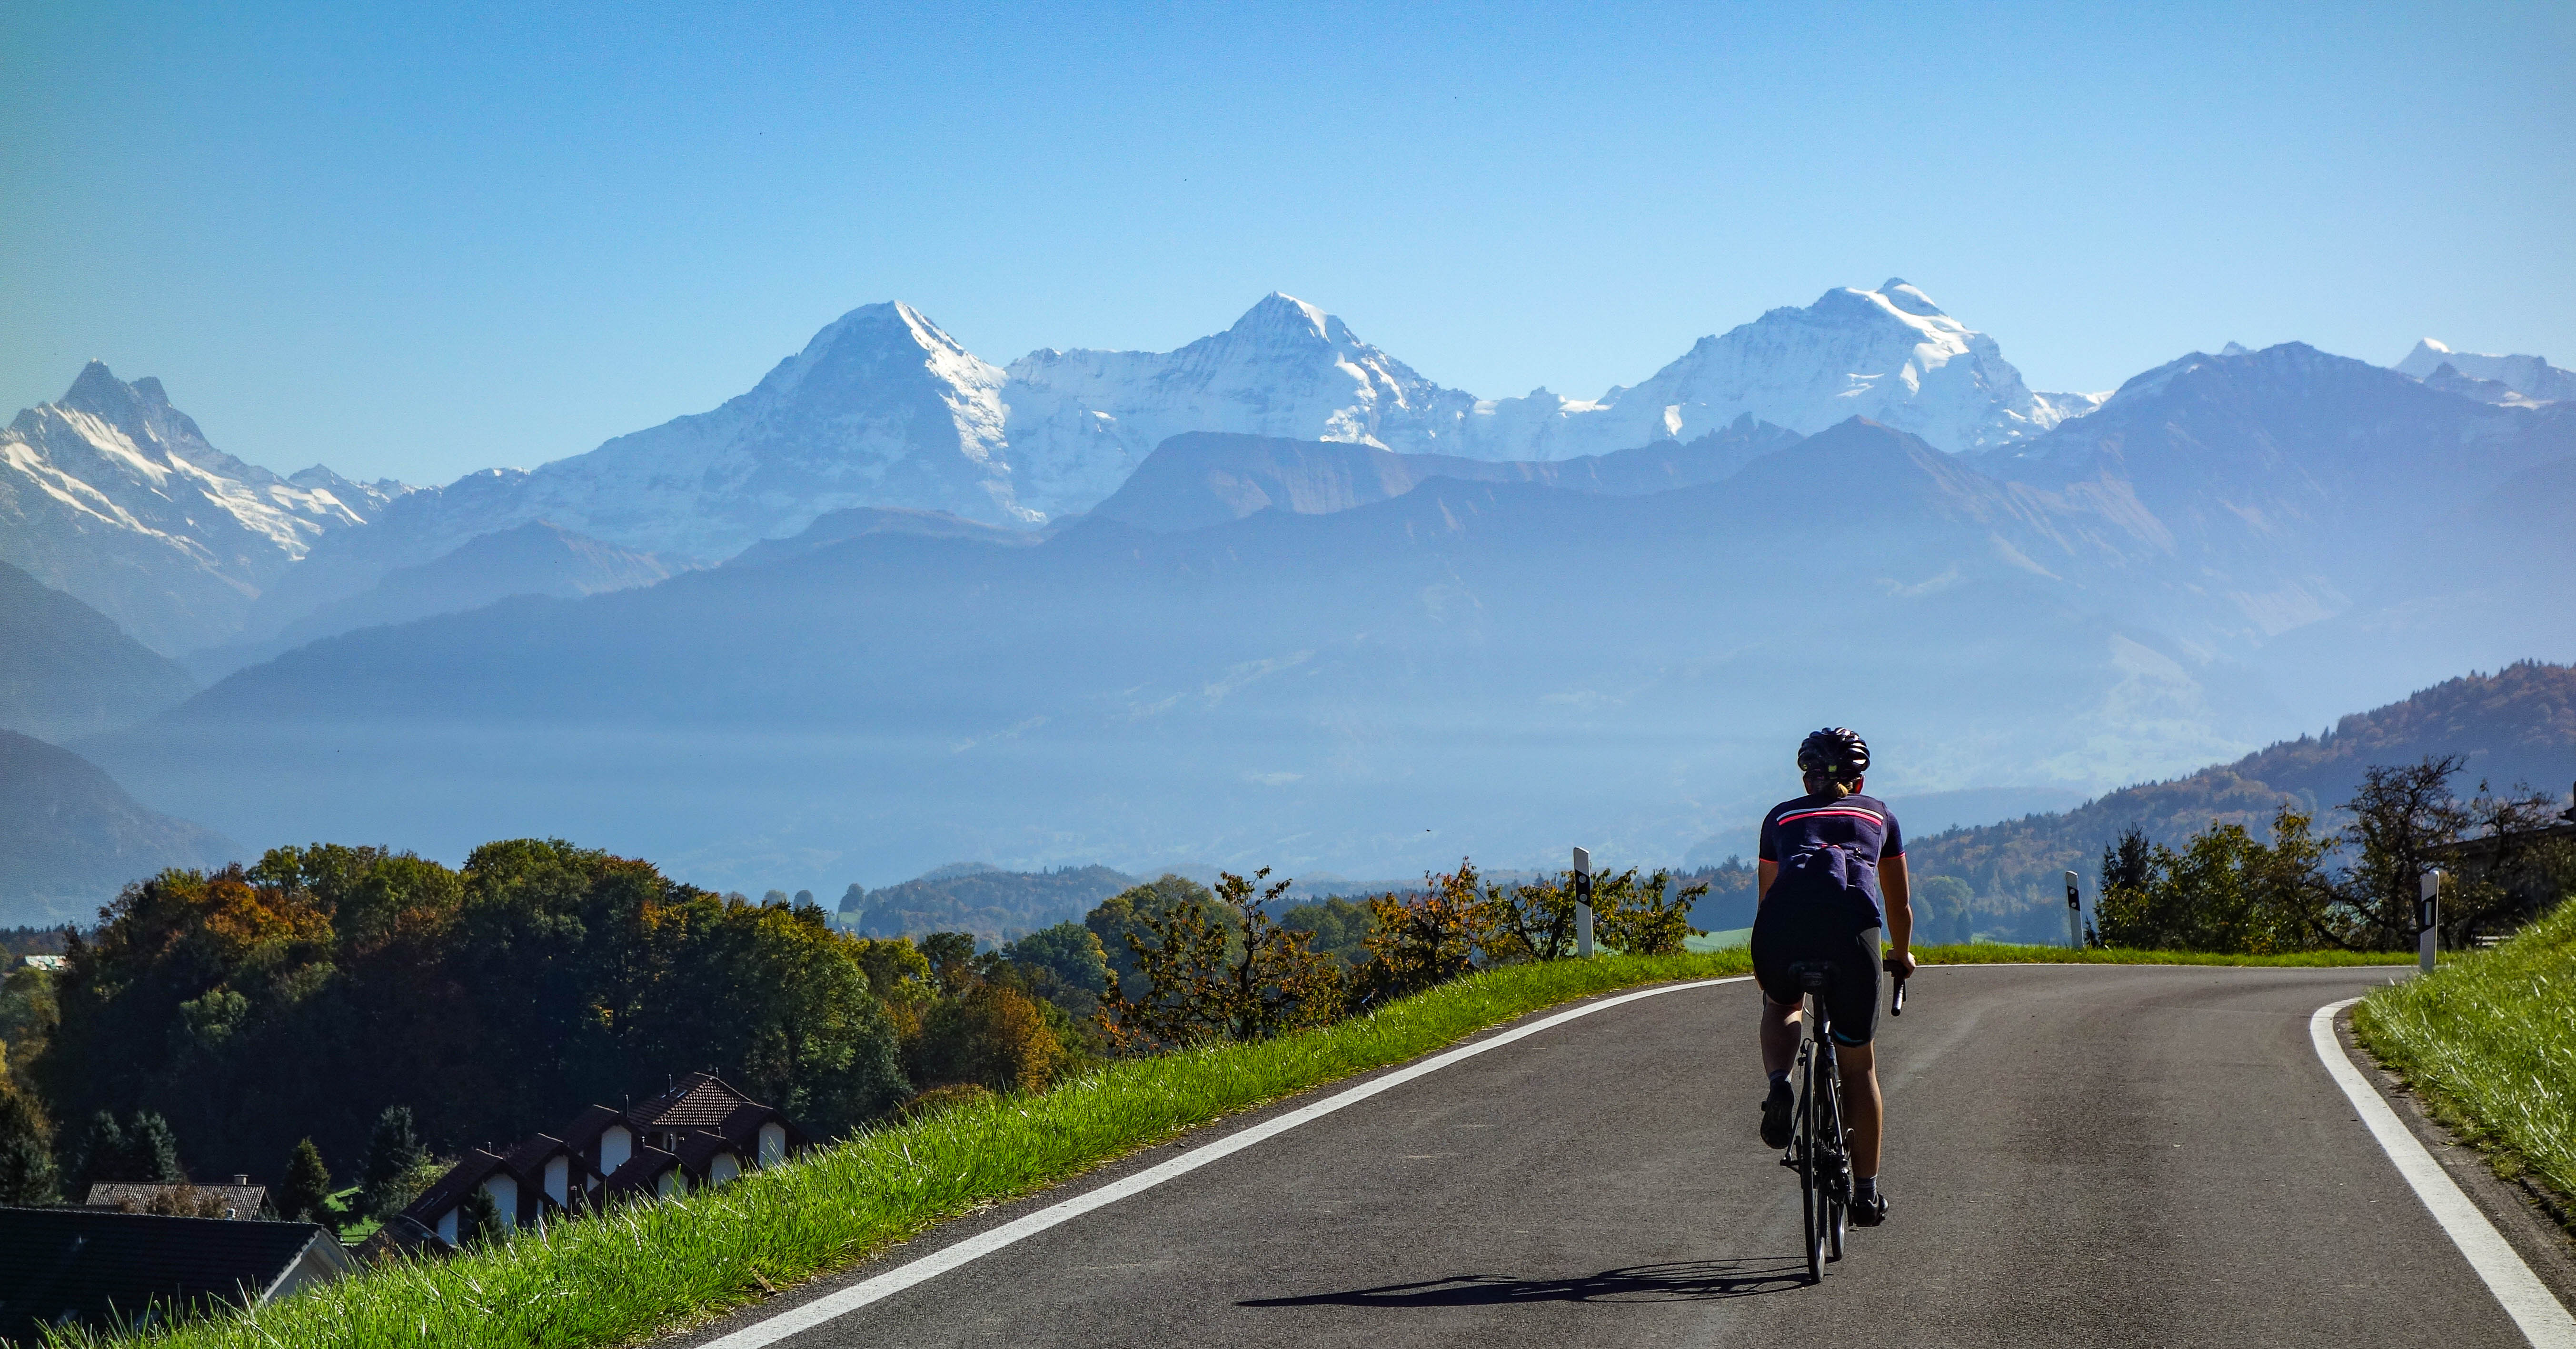 Cycling towards the Swiss Alps : bicycling